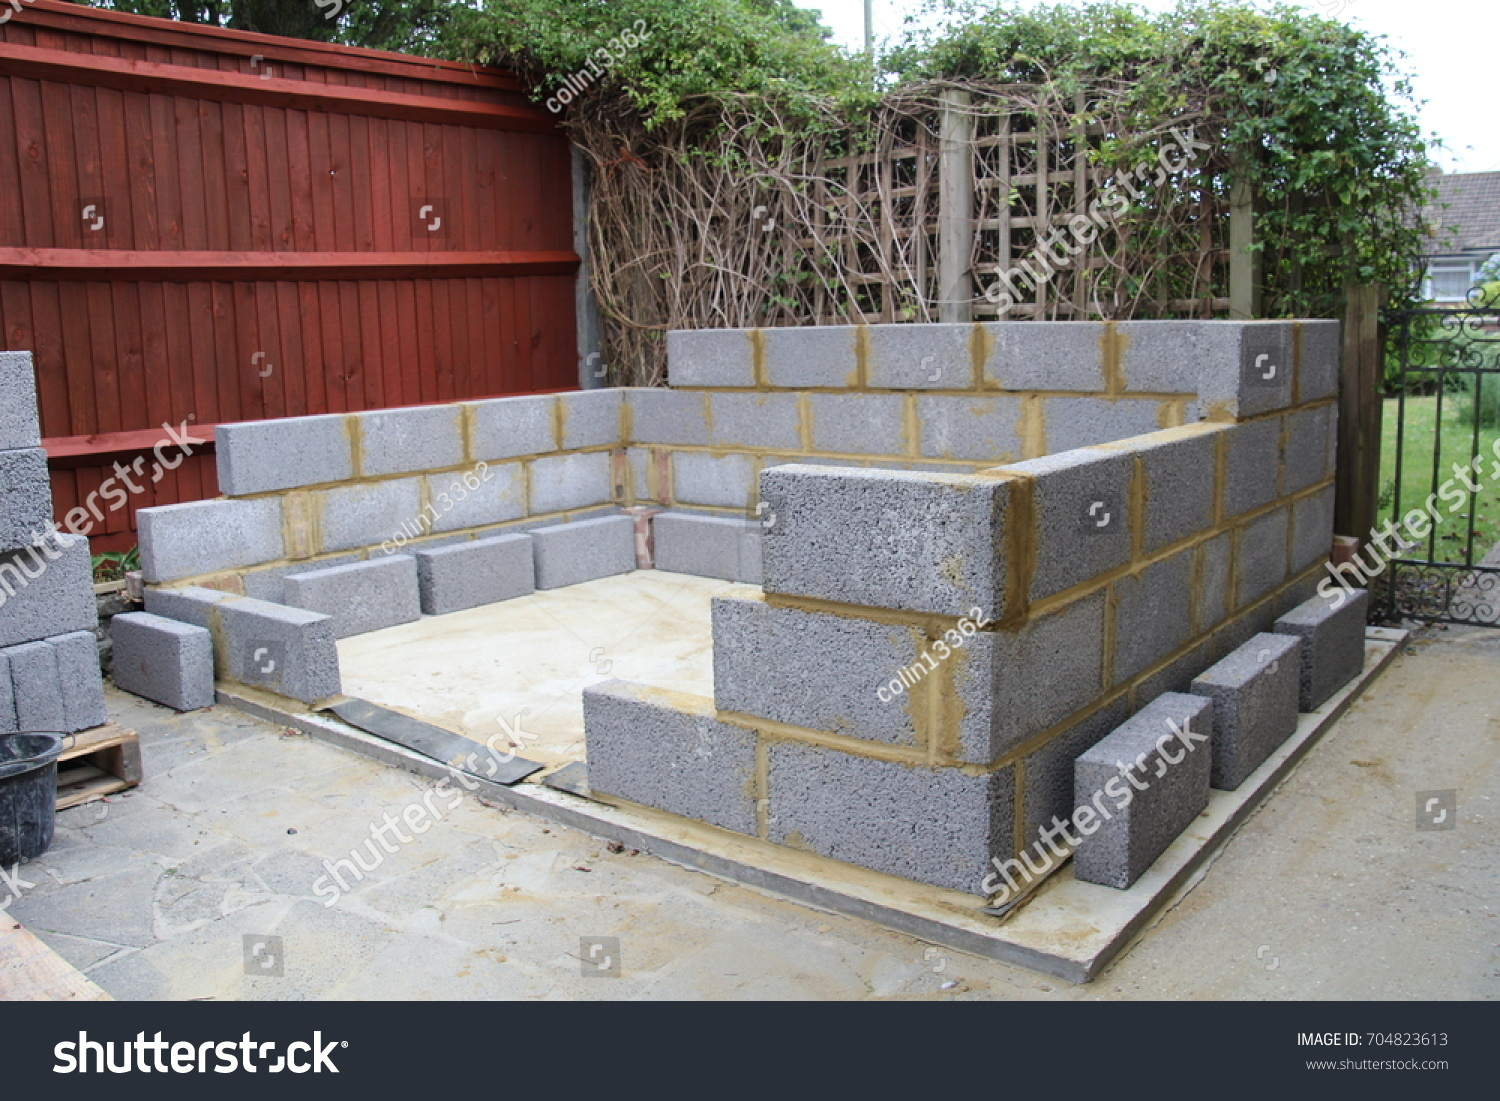 Construction Garden Shed Made Concrete Blocks Stock Photo Edit Now 704823613